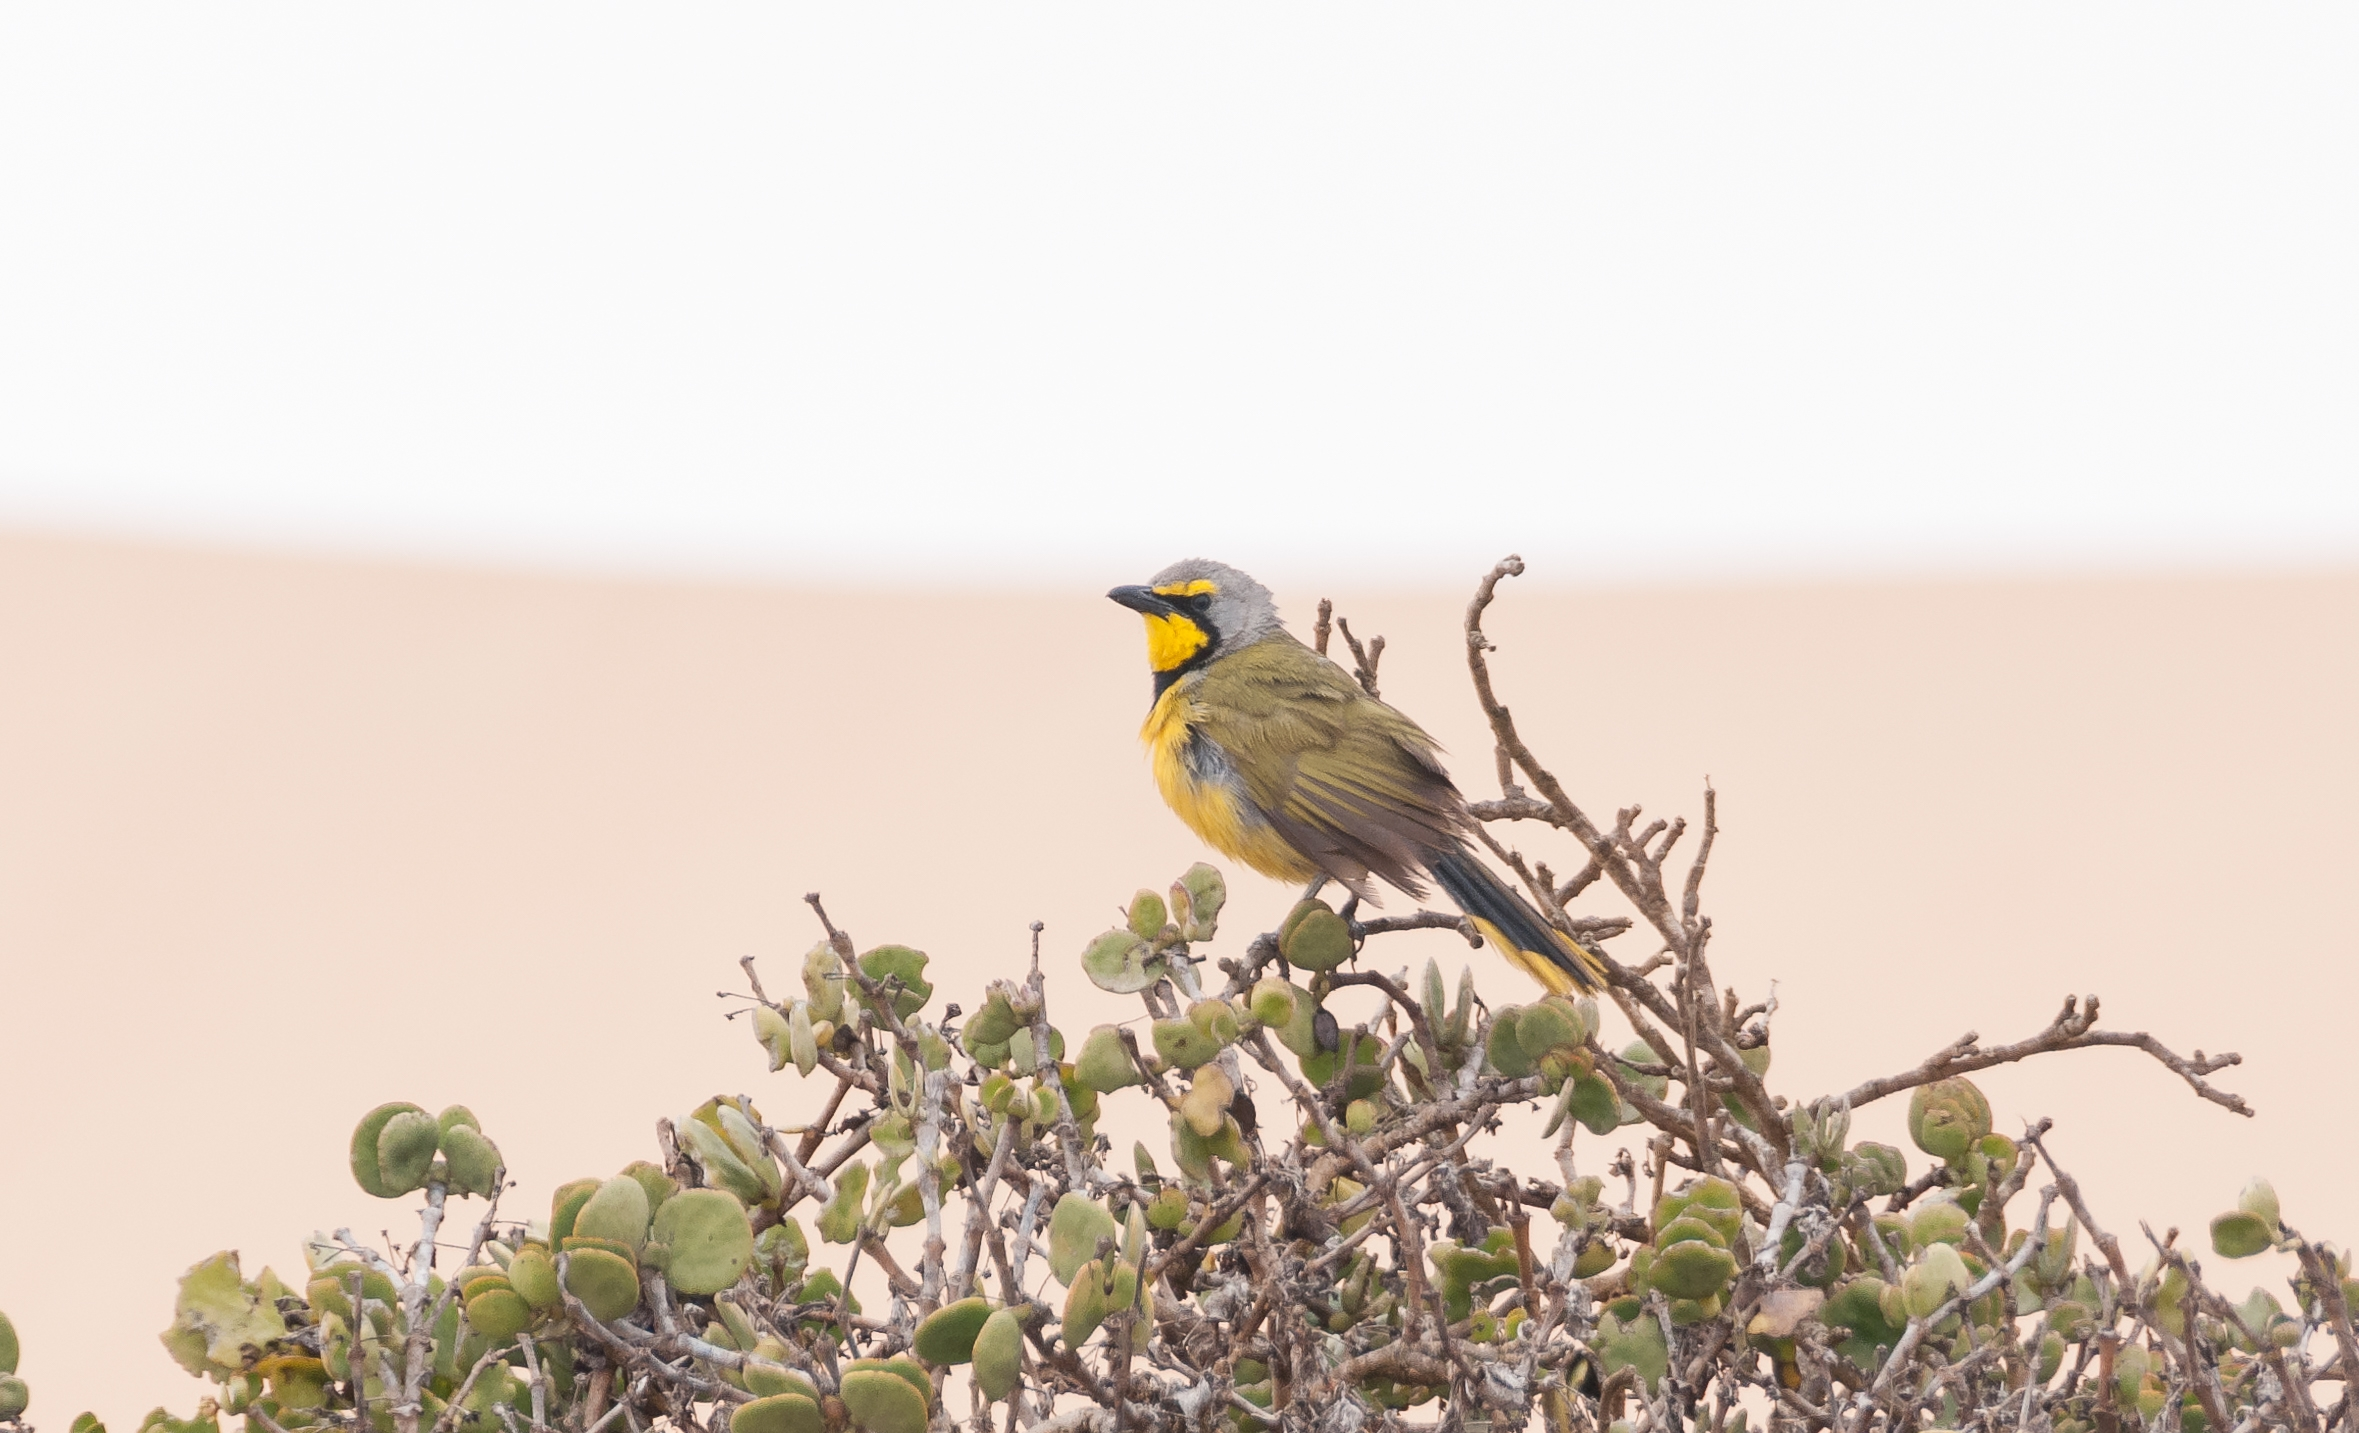 Our Namibia birding tours and desert birding day tours offer many desert specials, such as the Bokmakierie, photographed outside Swakopmund.